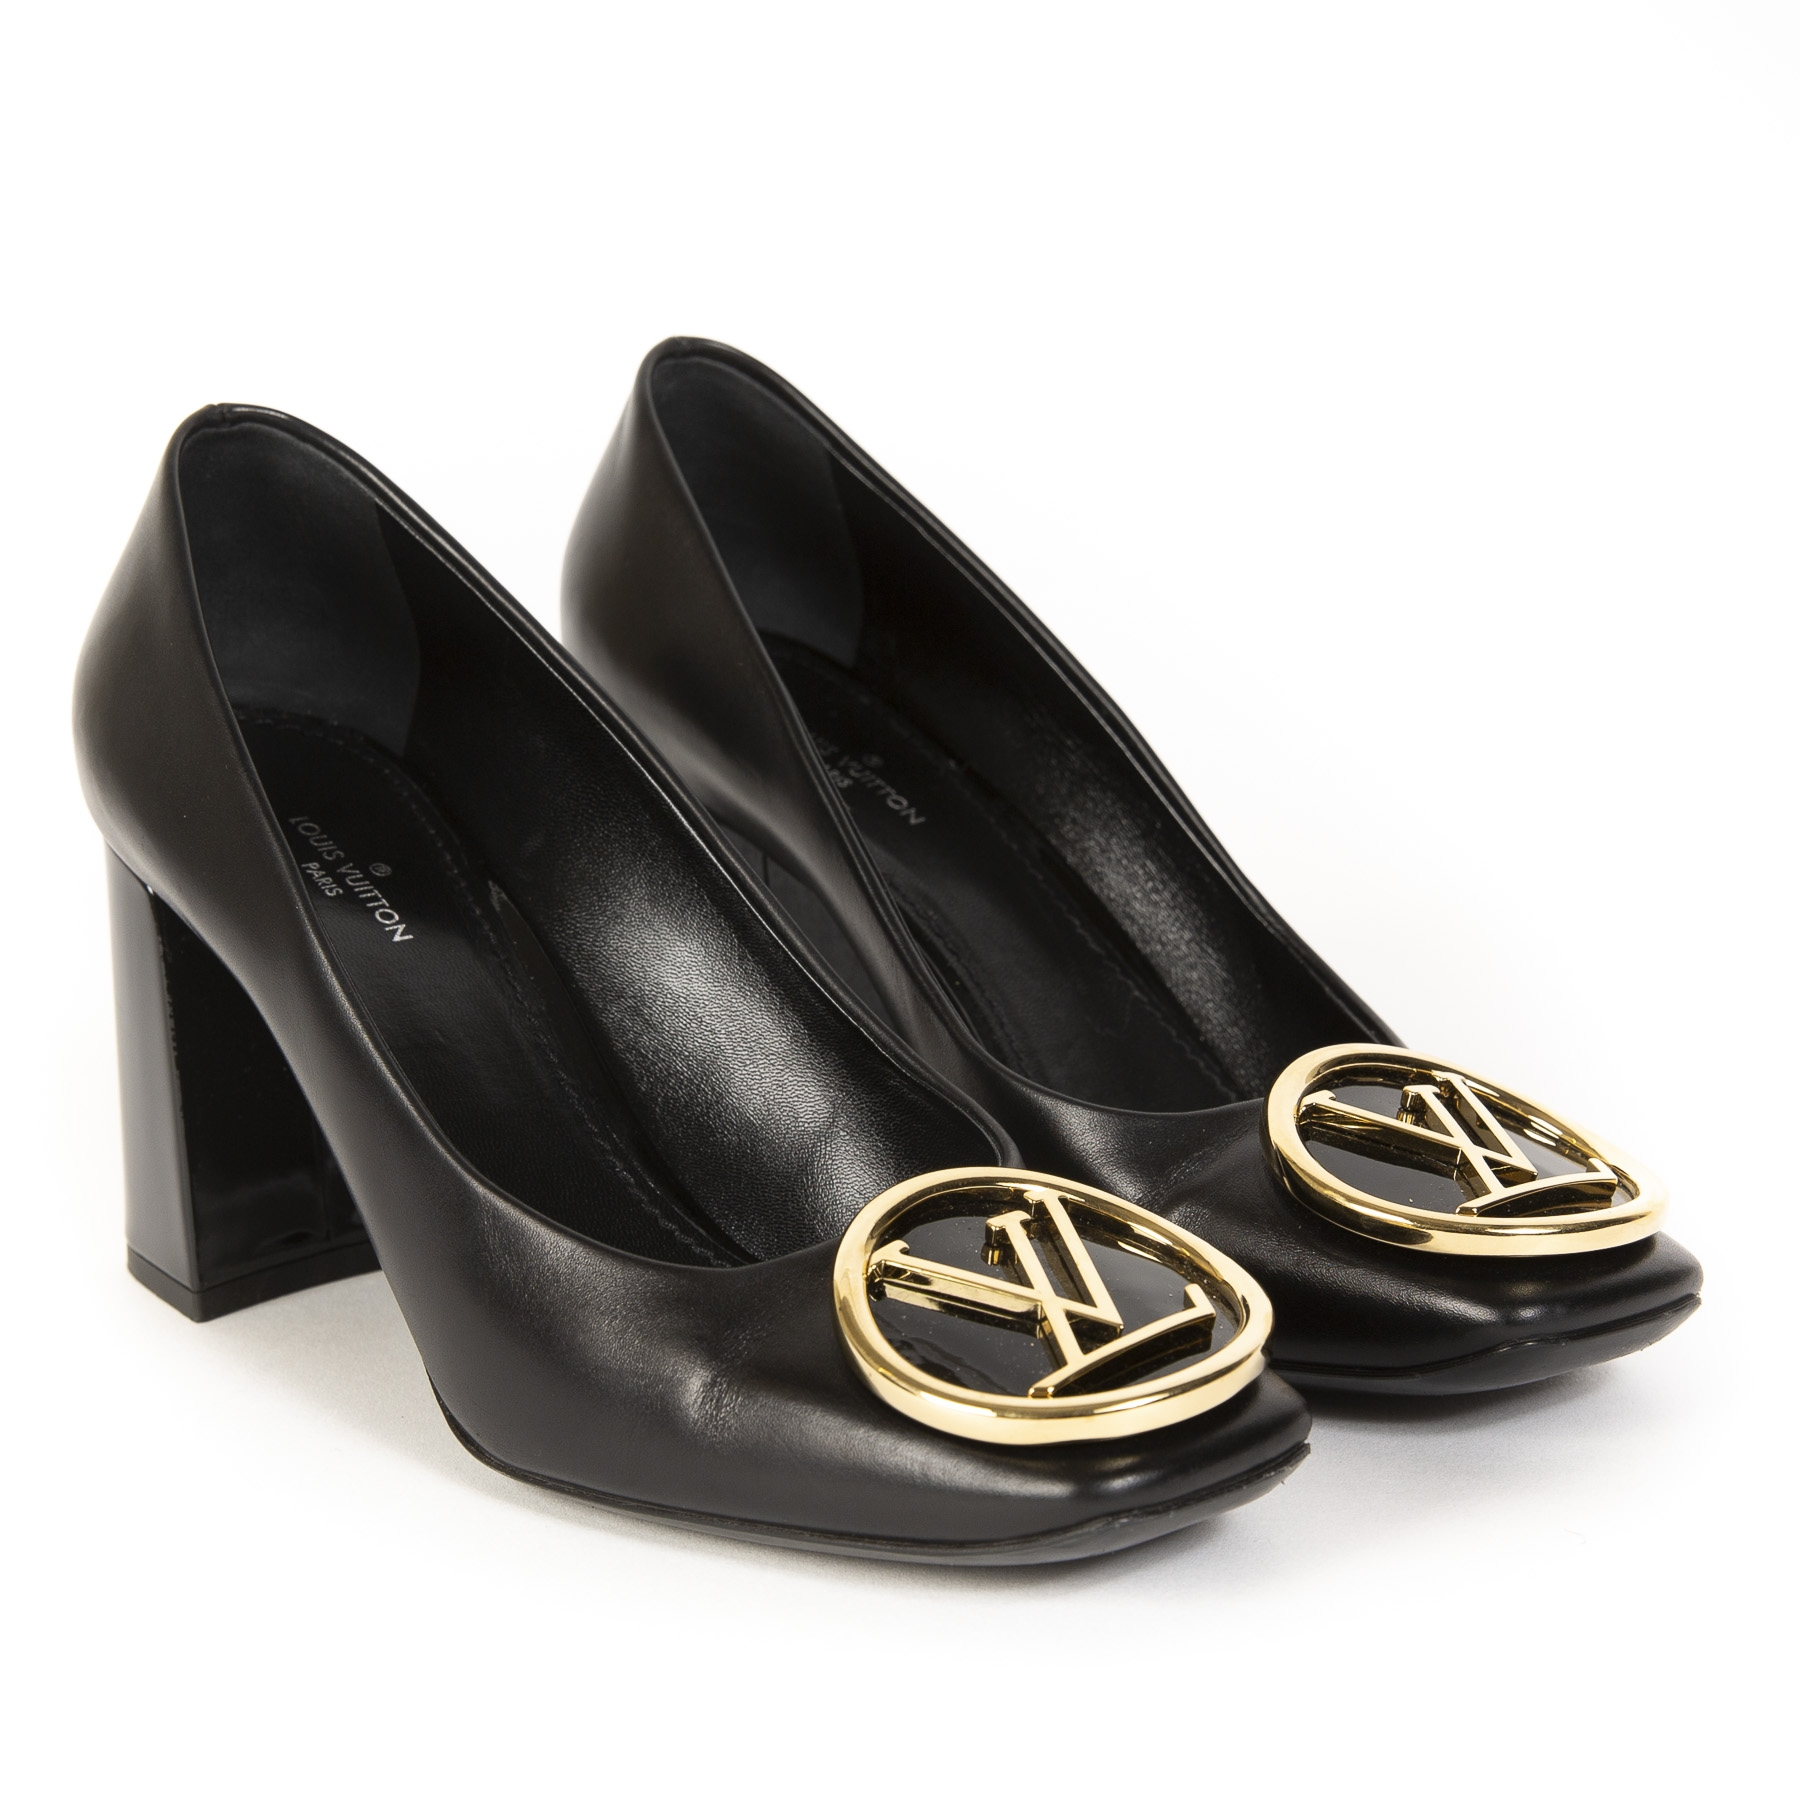 2ea1e6a53 Louis Vuitton Black Madeleine Pump Louis Vuitton Black Madeleine Pump